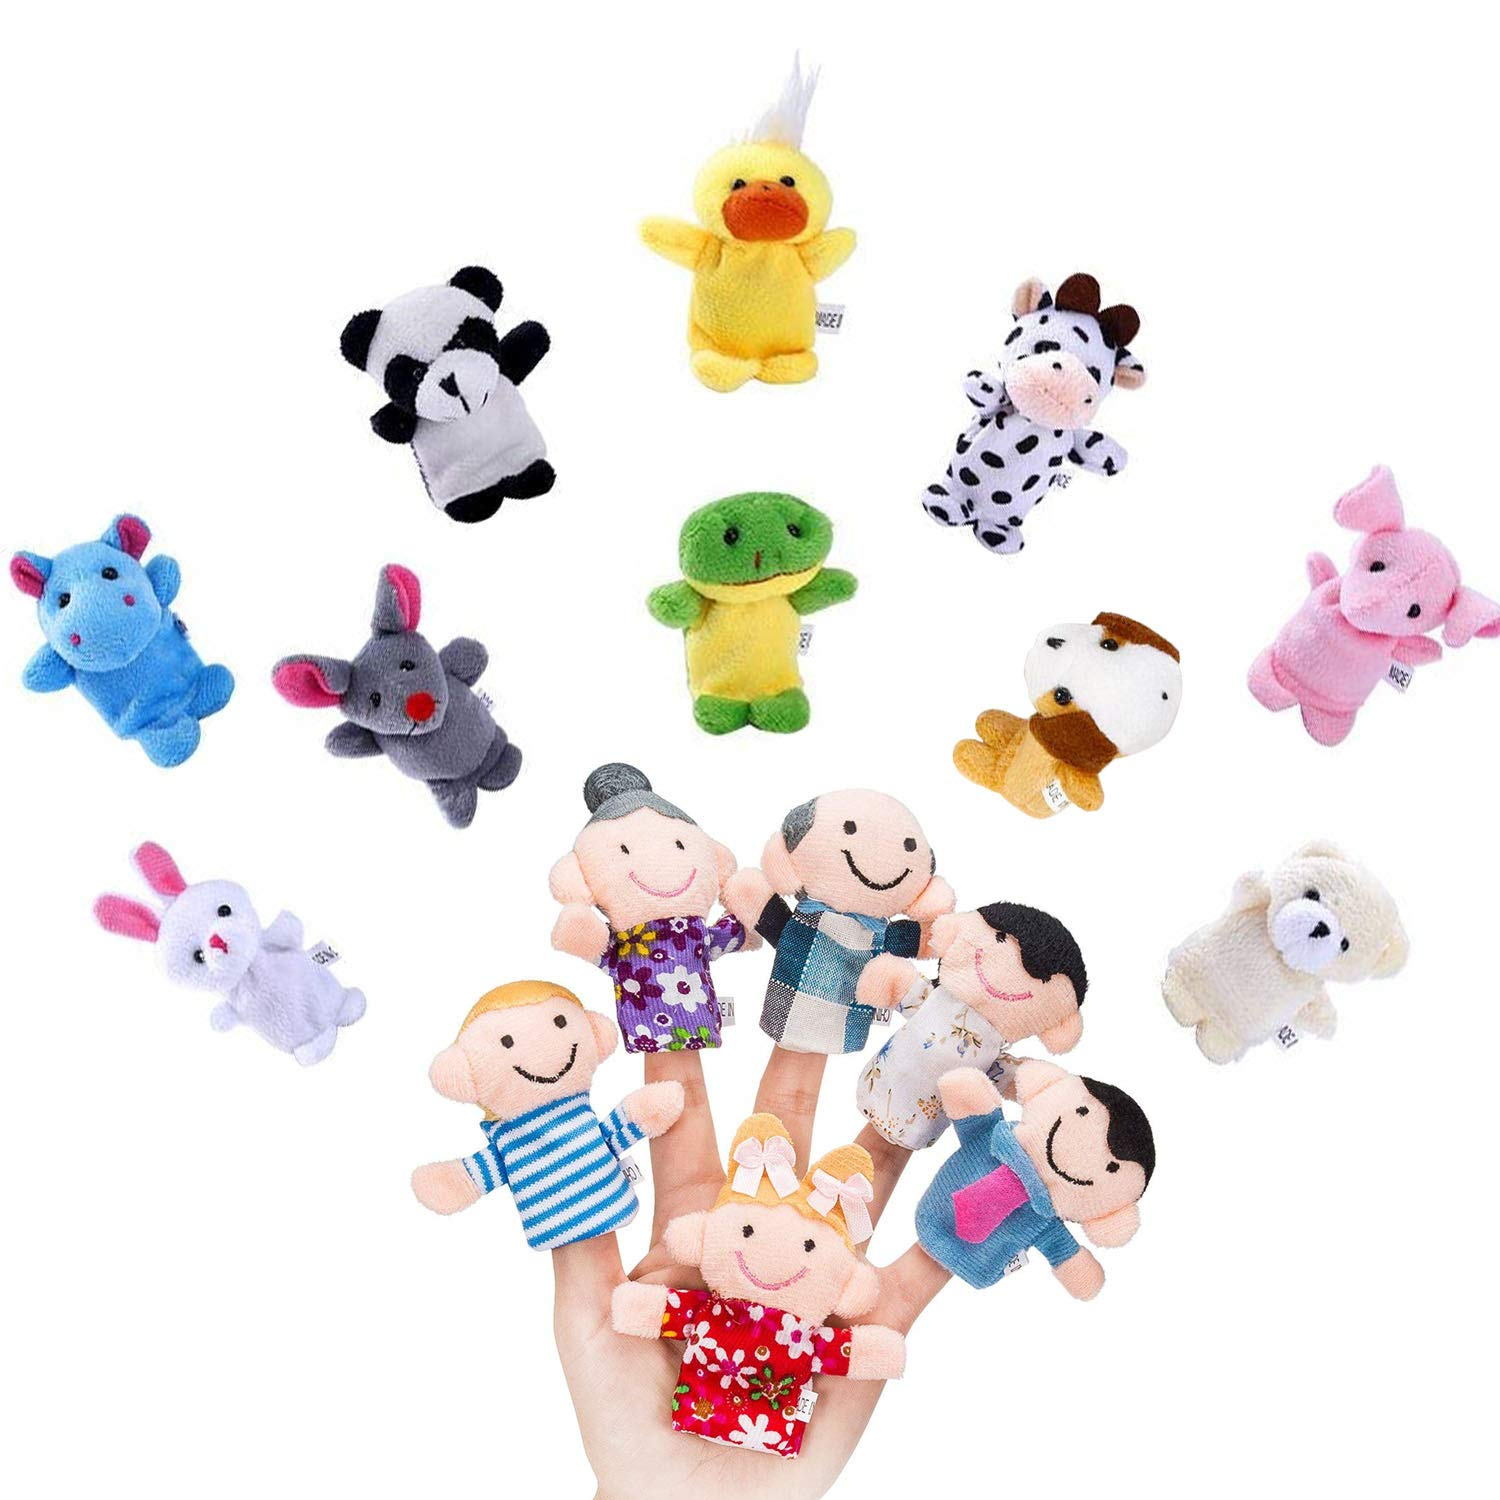 Y-luck 16 Pcs Finger Puppets -10 Animals and 6 People Family Members,Educational Toy Velvet Cute Toys for Children Story Time,School Playtime, Show,Gifts